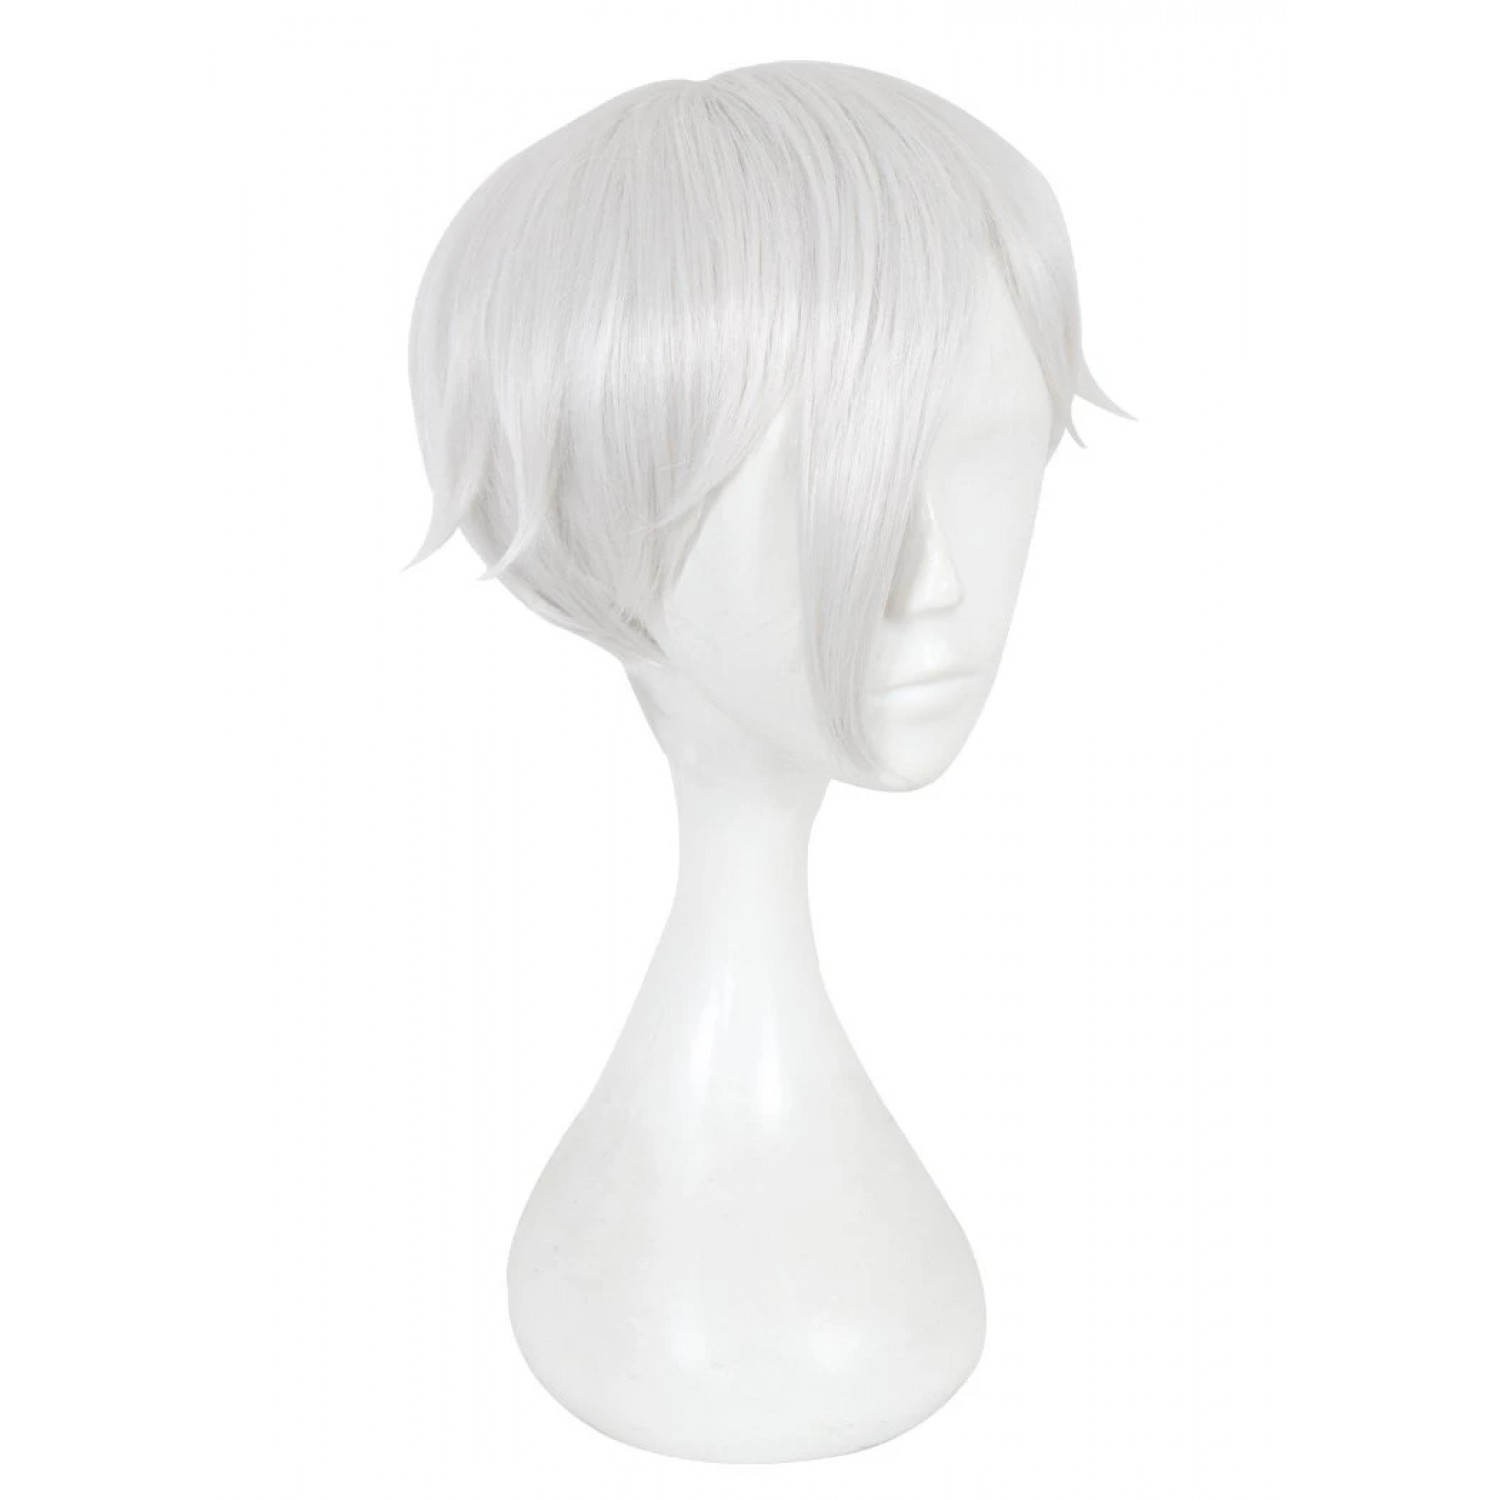 Land of the Lustrous Antarcticite Silver White Short Cosplay Hair Wig